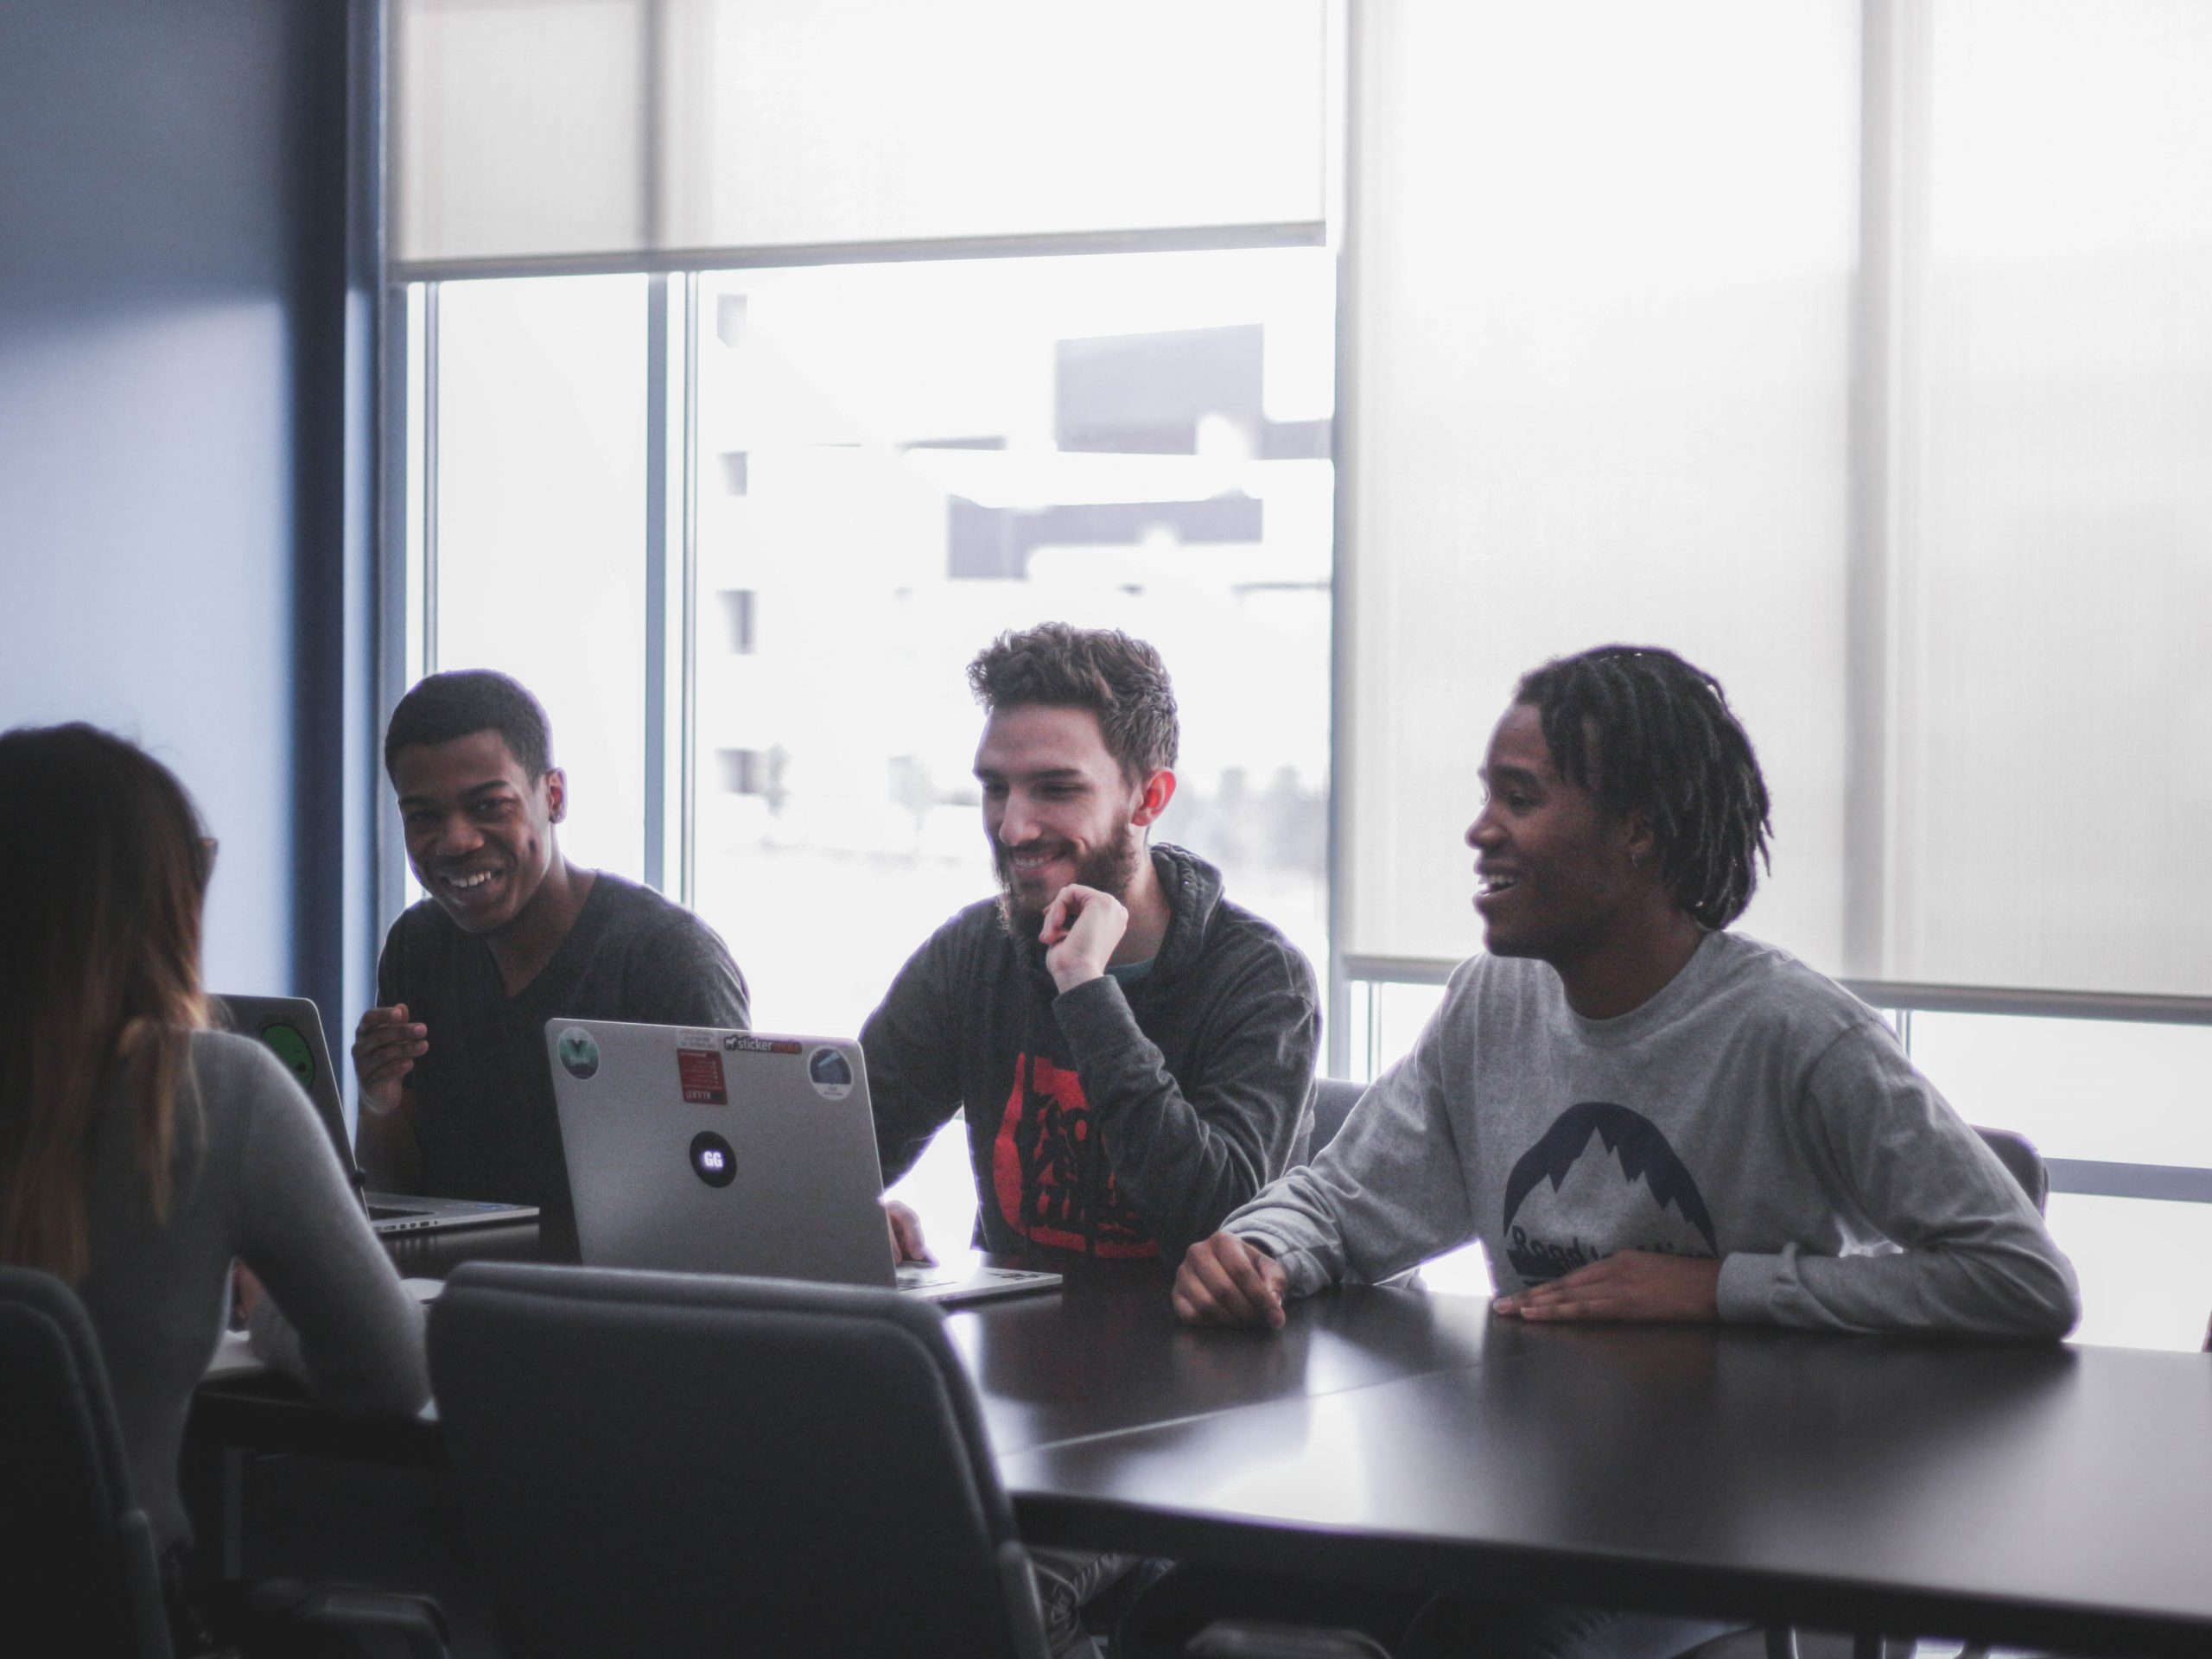 Diversity Equity Inclusion and Belonging in the Workplace